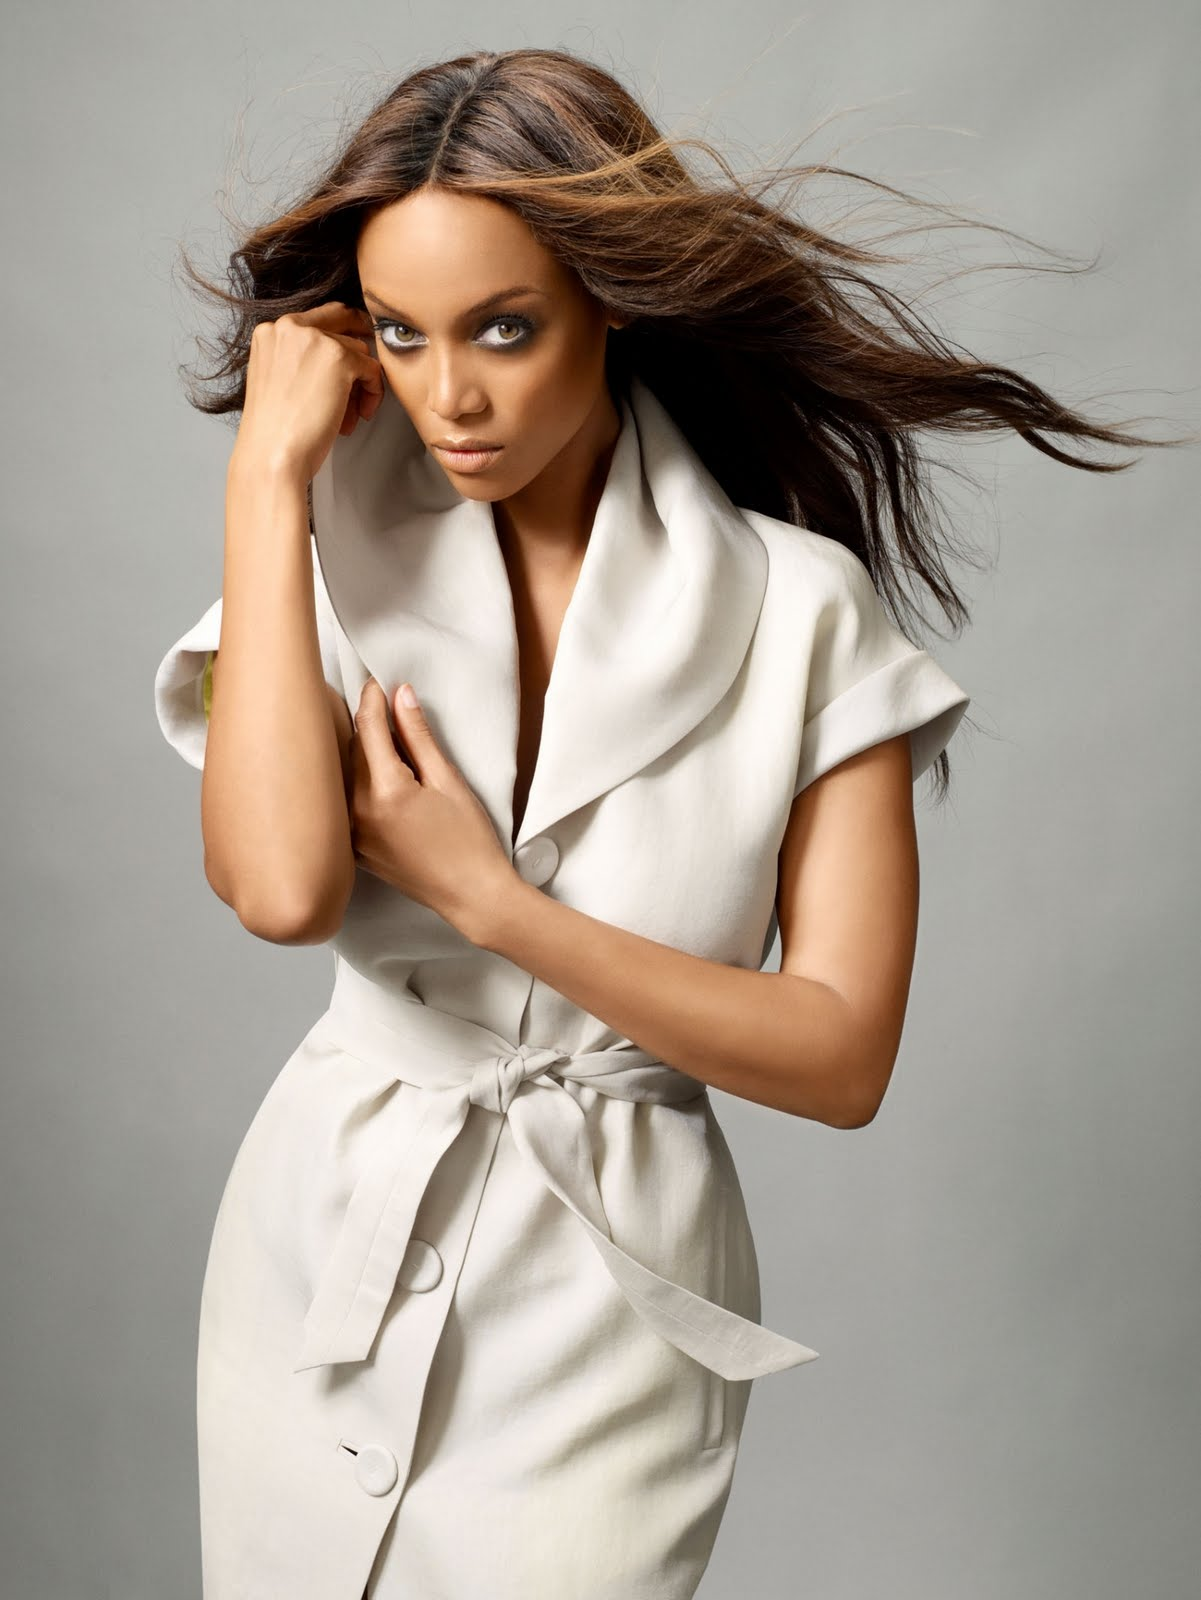 Tyra Banks (America's Next Top Model Cycle 13 Photos) HQ